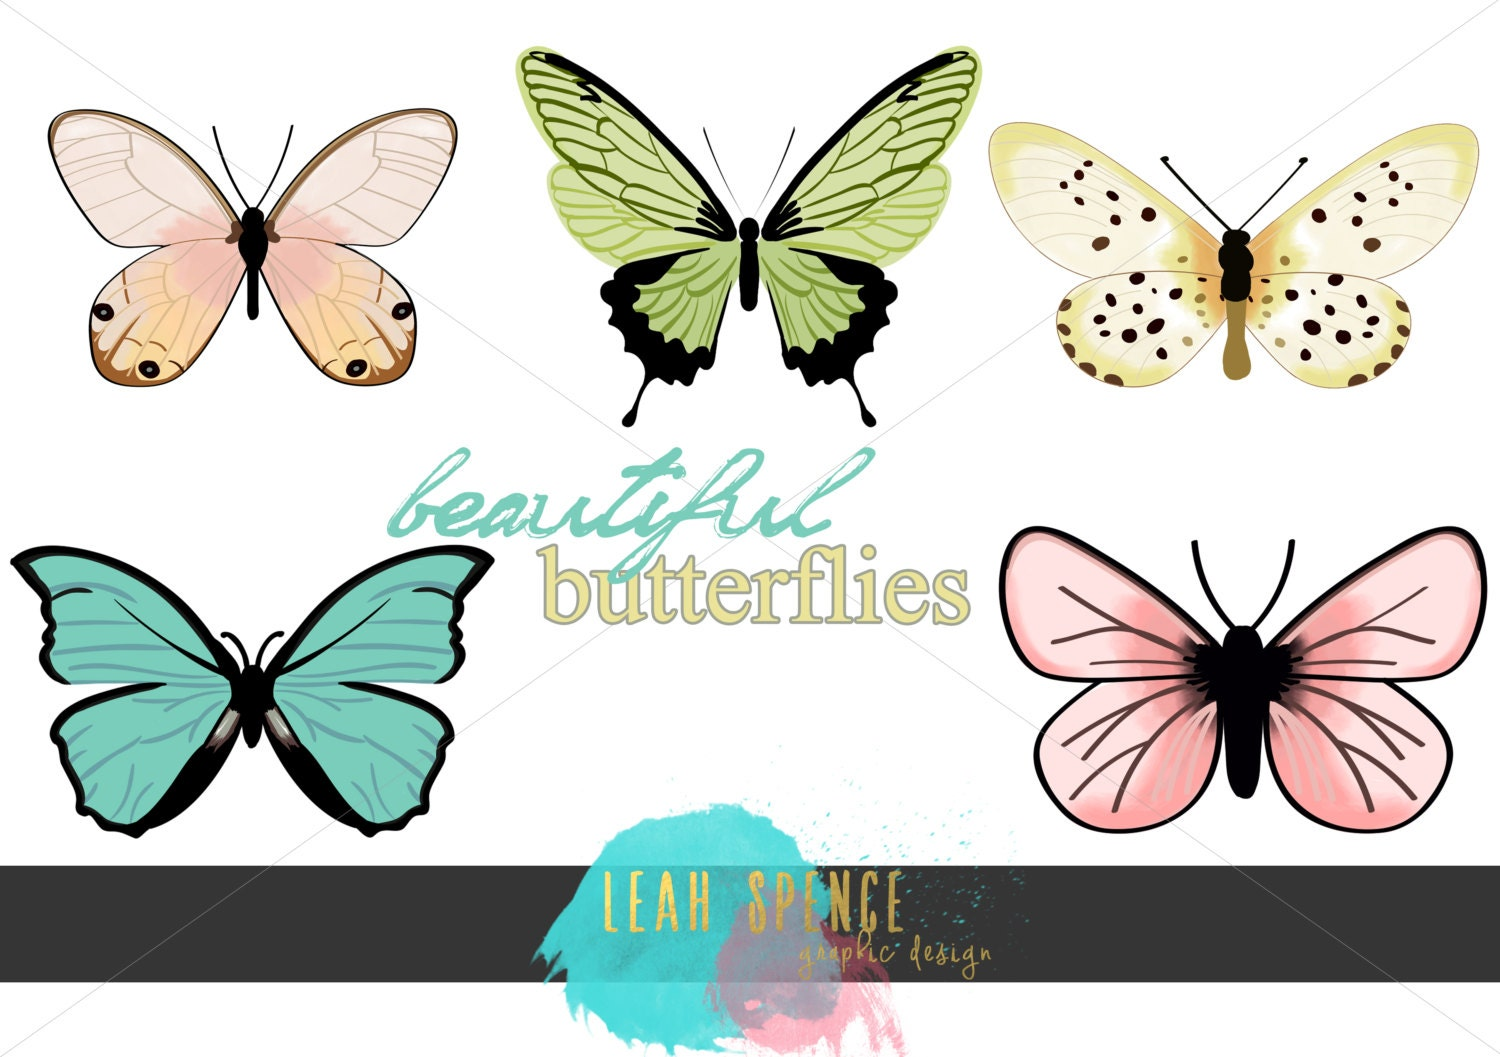 Butterfly Invitations Wedding for adorable invitation layout